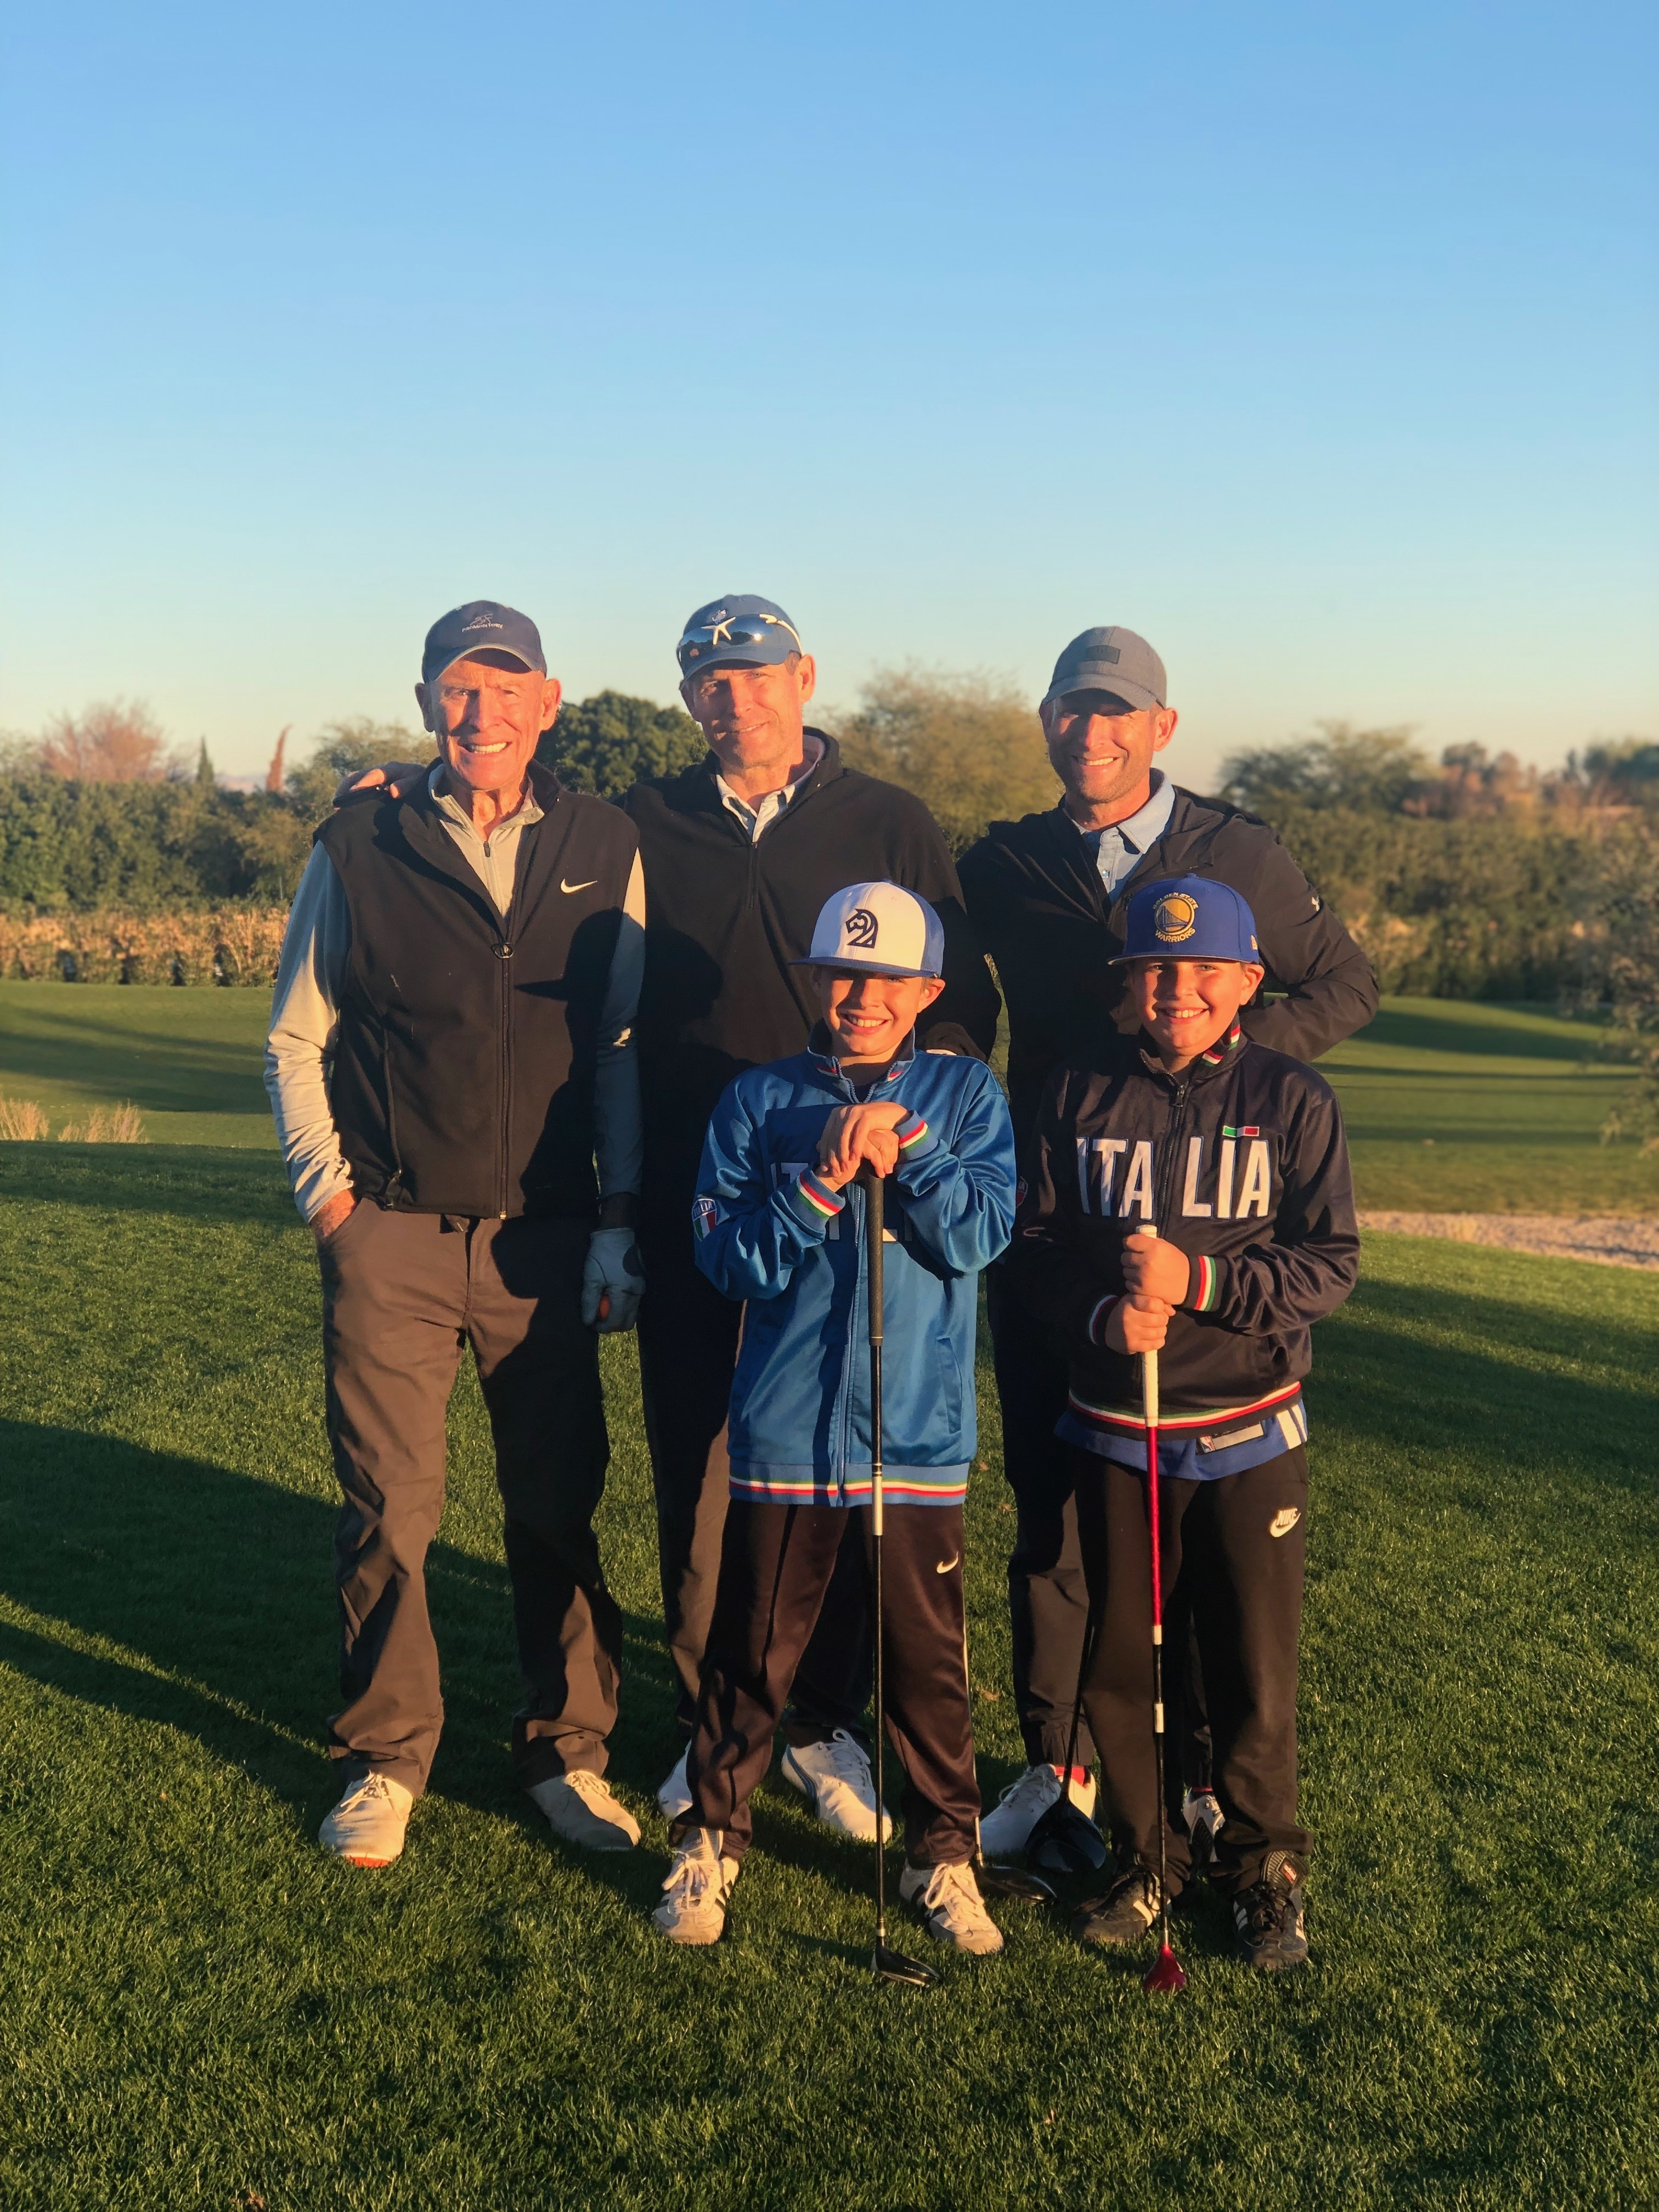 Left to right, Grit, Steve and Tom Young, with Tom's twins Luke and Max sin front, had a rare opportunity to play a round of golf to begin the new year. Luke and Max got to come along to take score and hit a ball or two. We can't get too busy that we don'